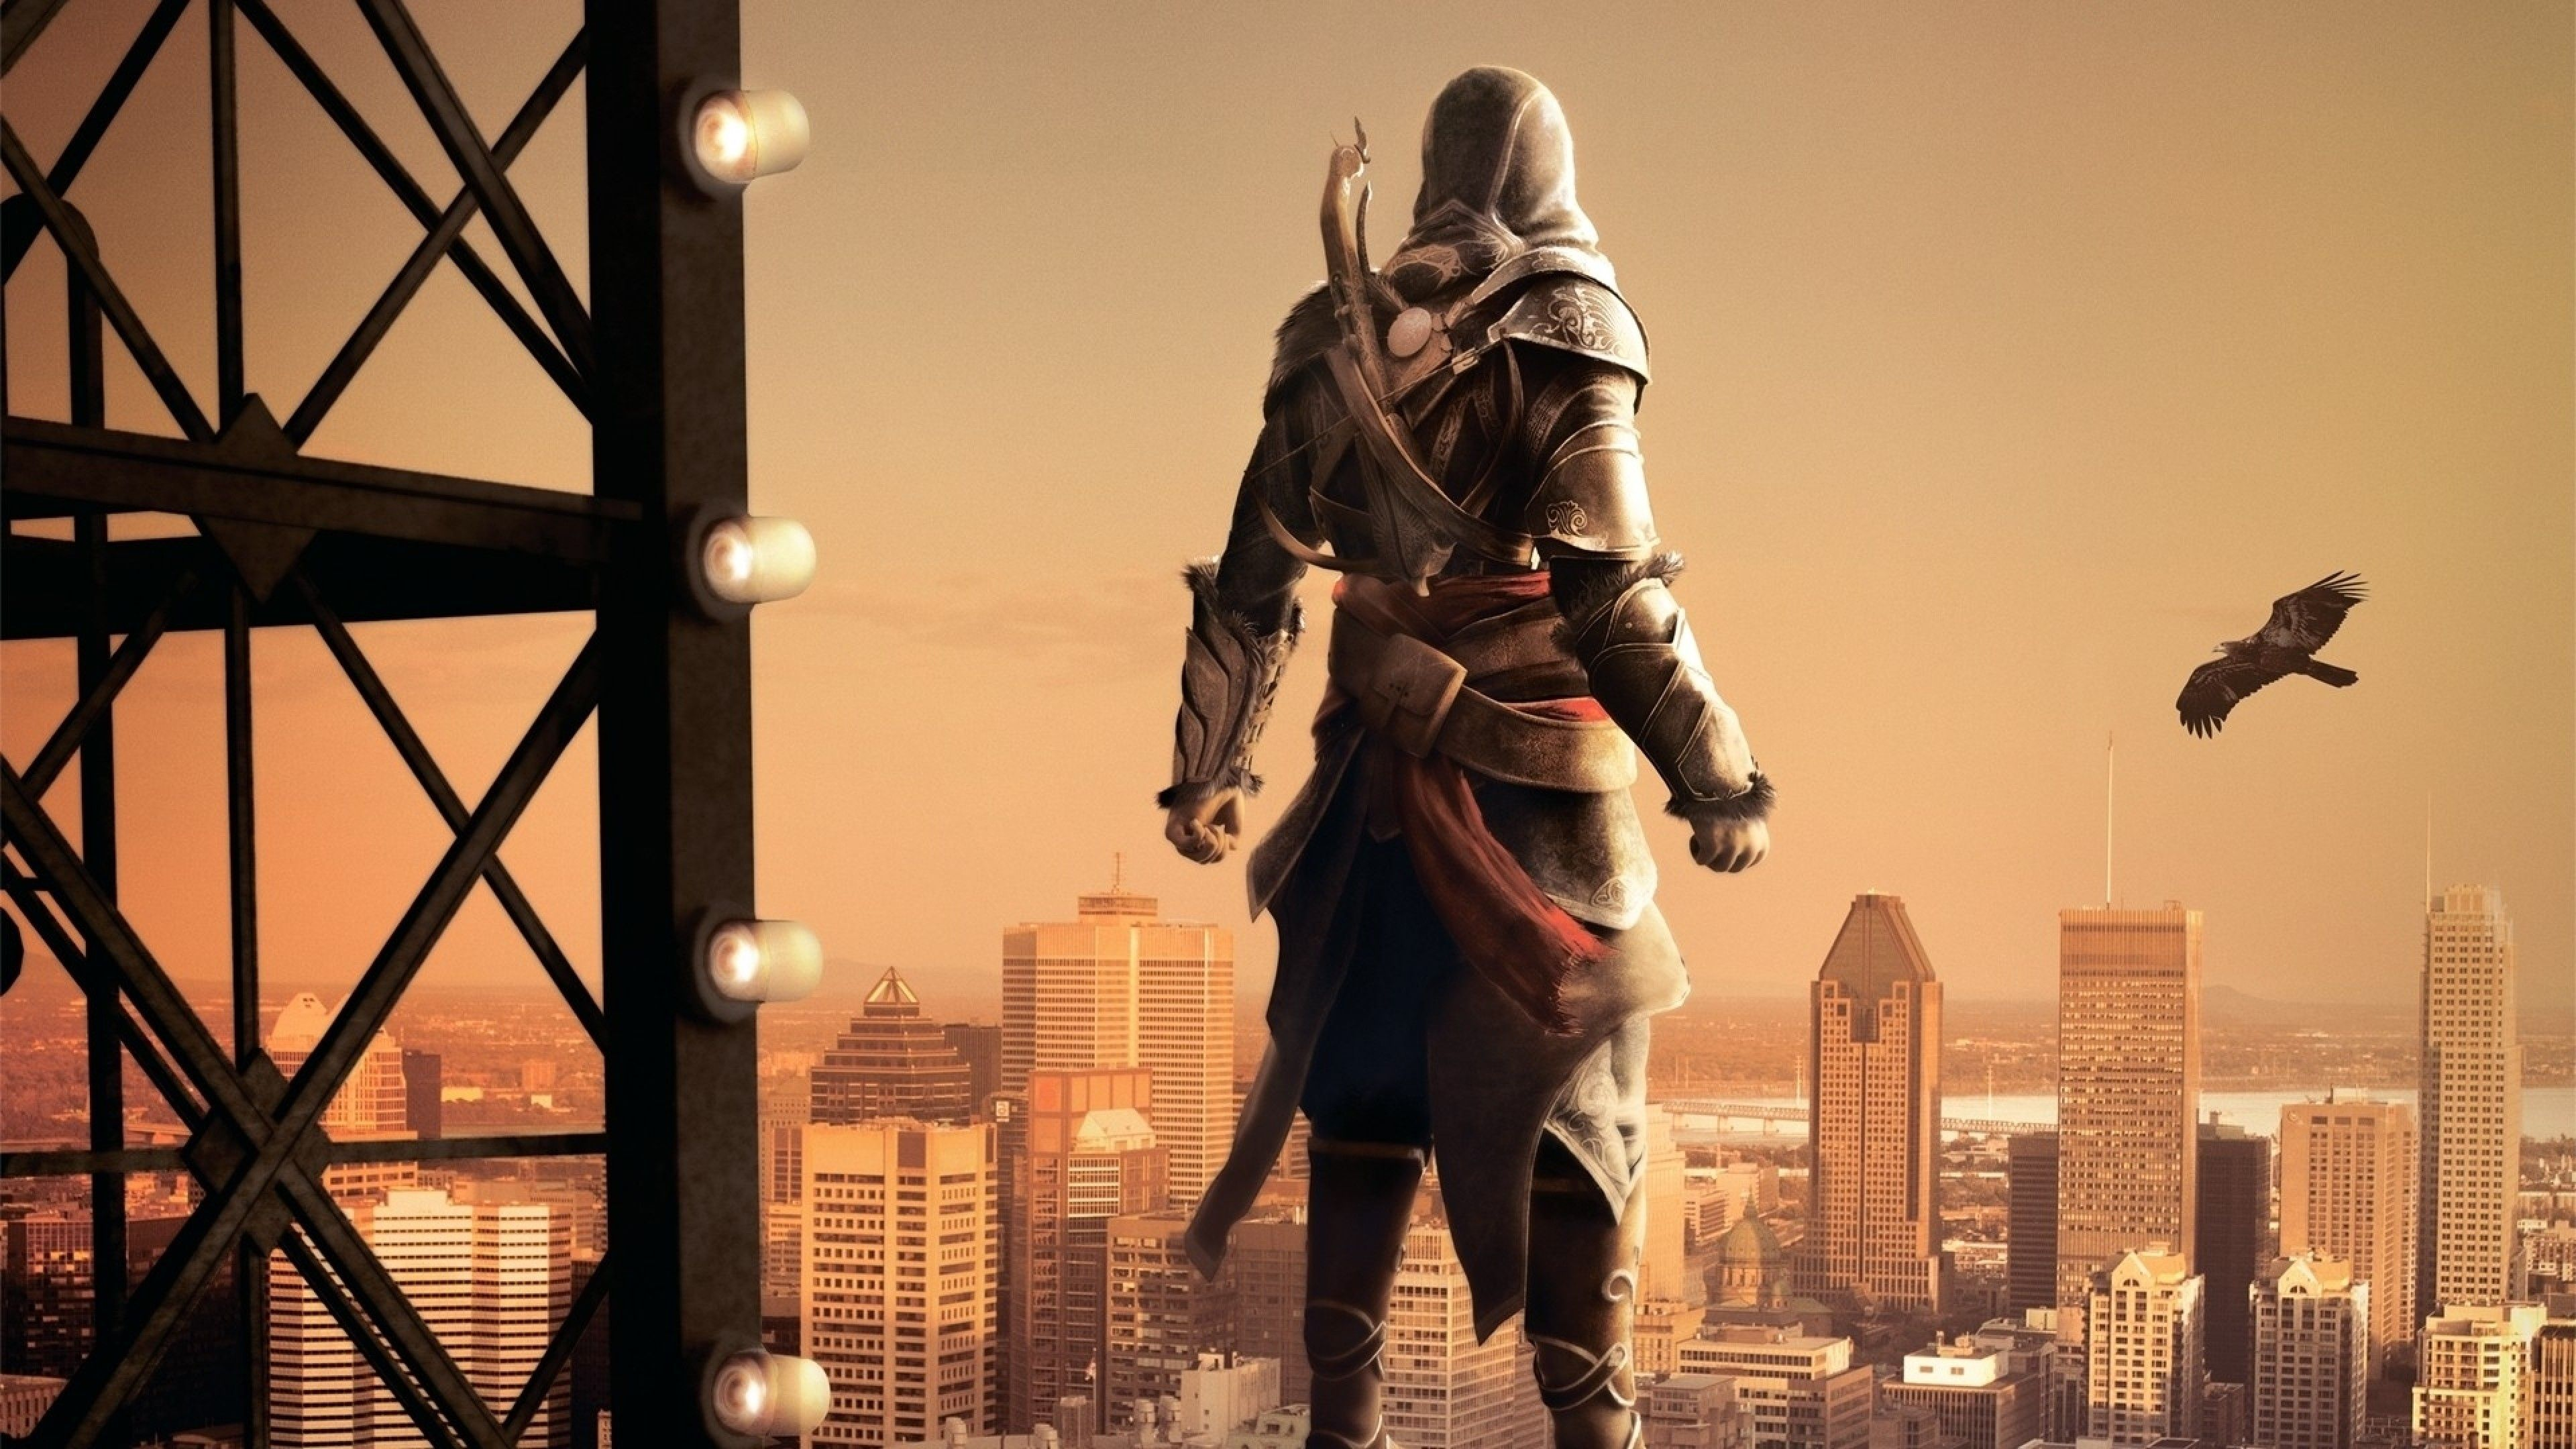 Assassin Creed Ezio Hd Wallpapers Games Wallpapers Assassins Creed Wallpapers 4k Wallpapers Assassin S Creed Wallpaper Assassins Creed Assassins Creed 2